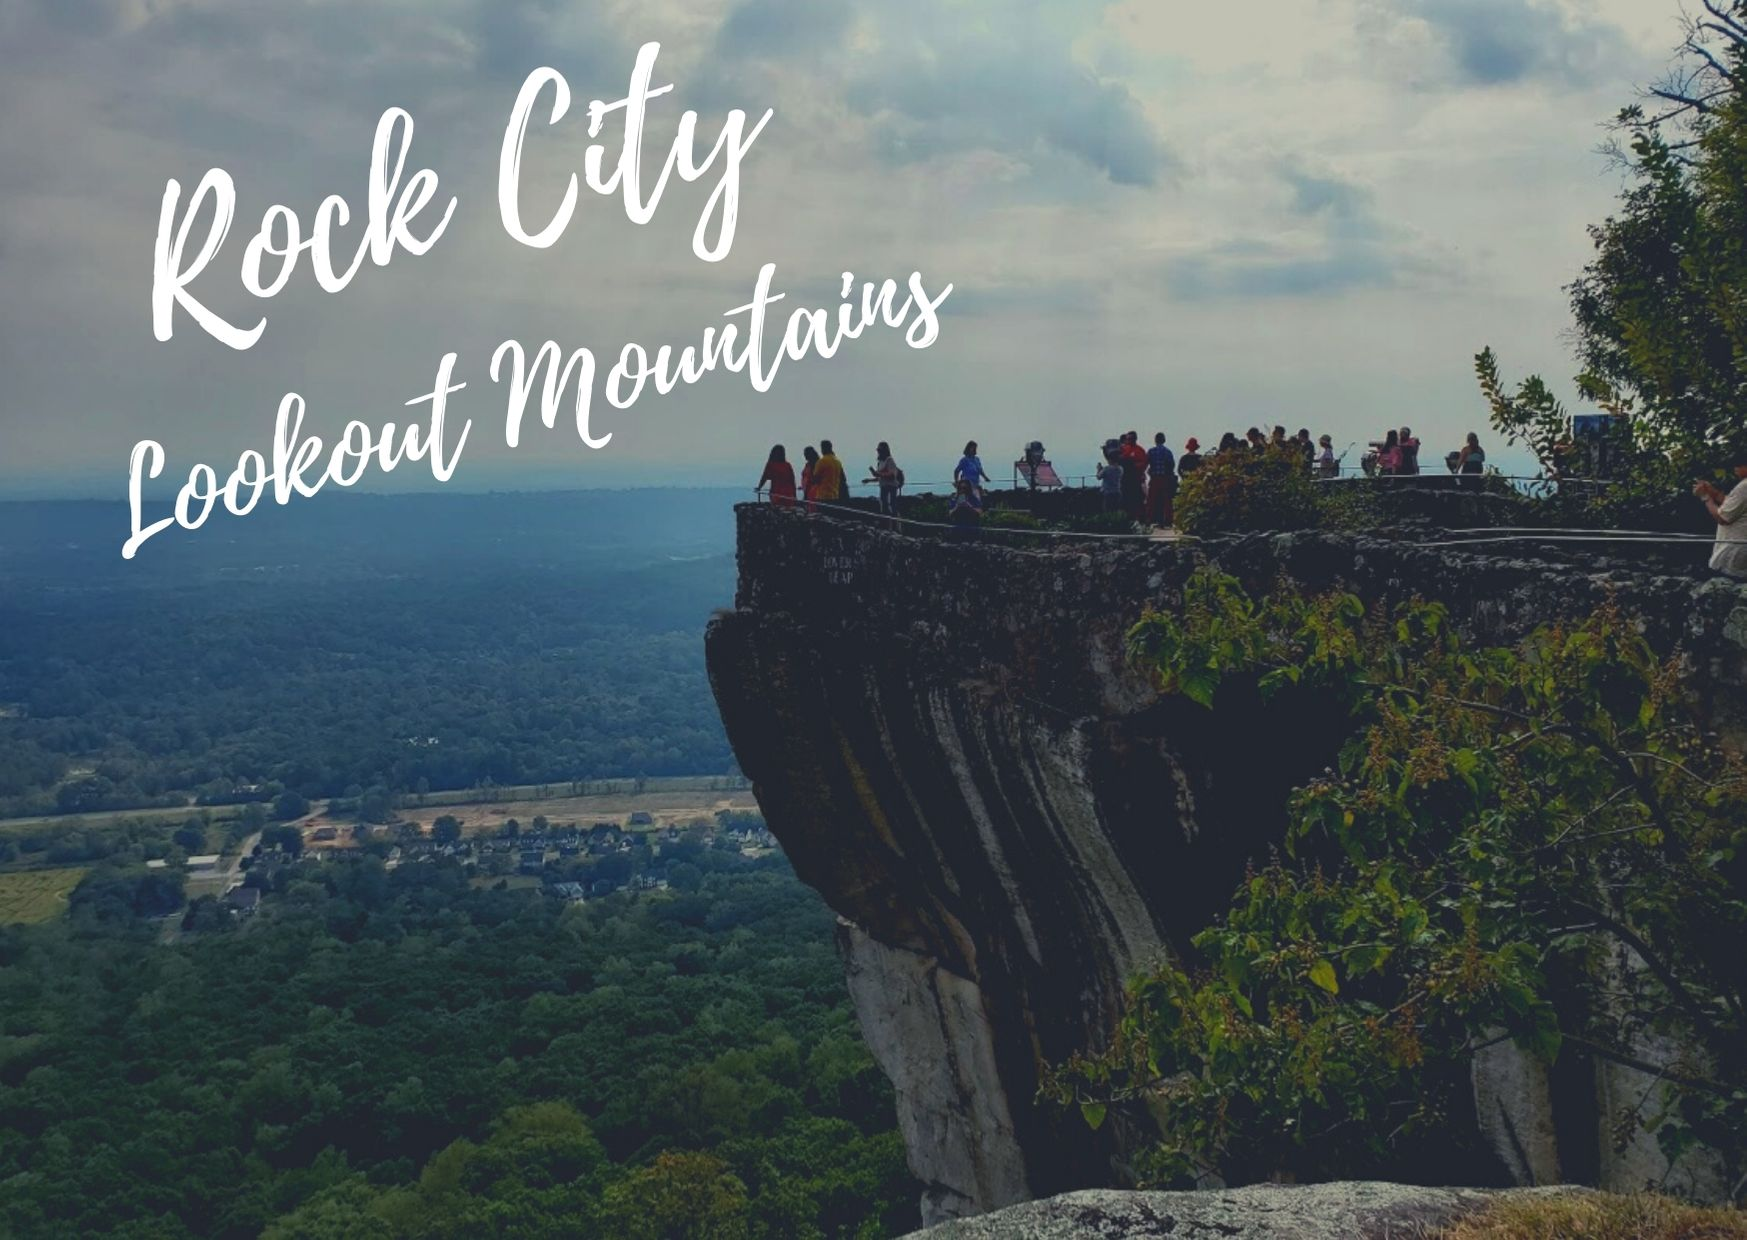 Rock City in Lookout Mountains